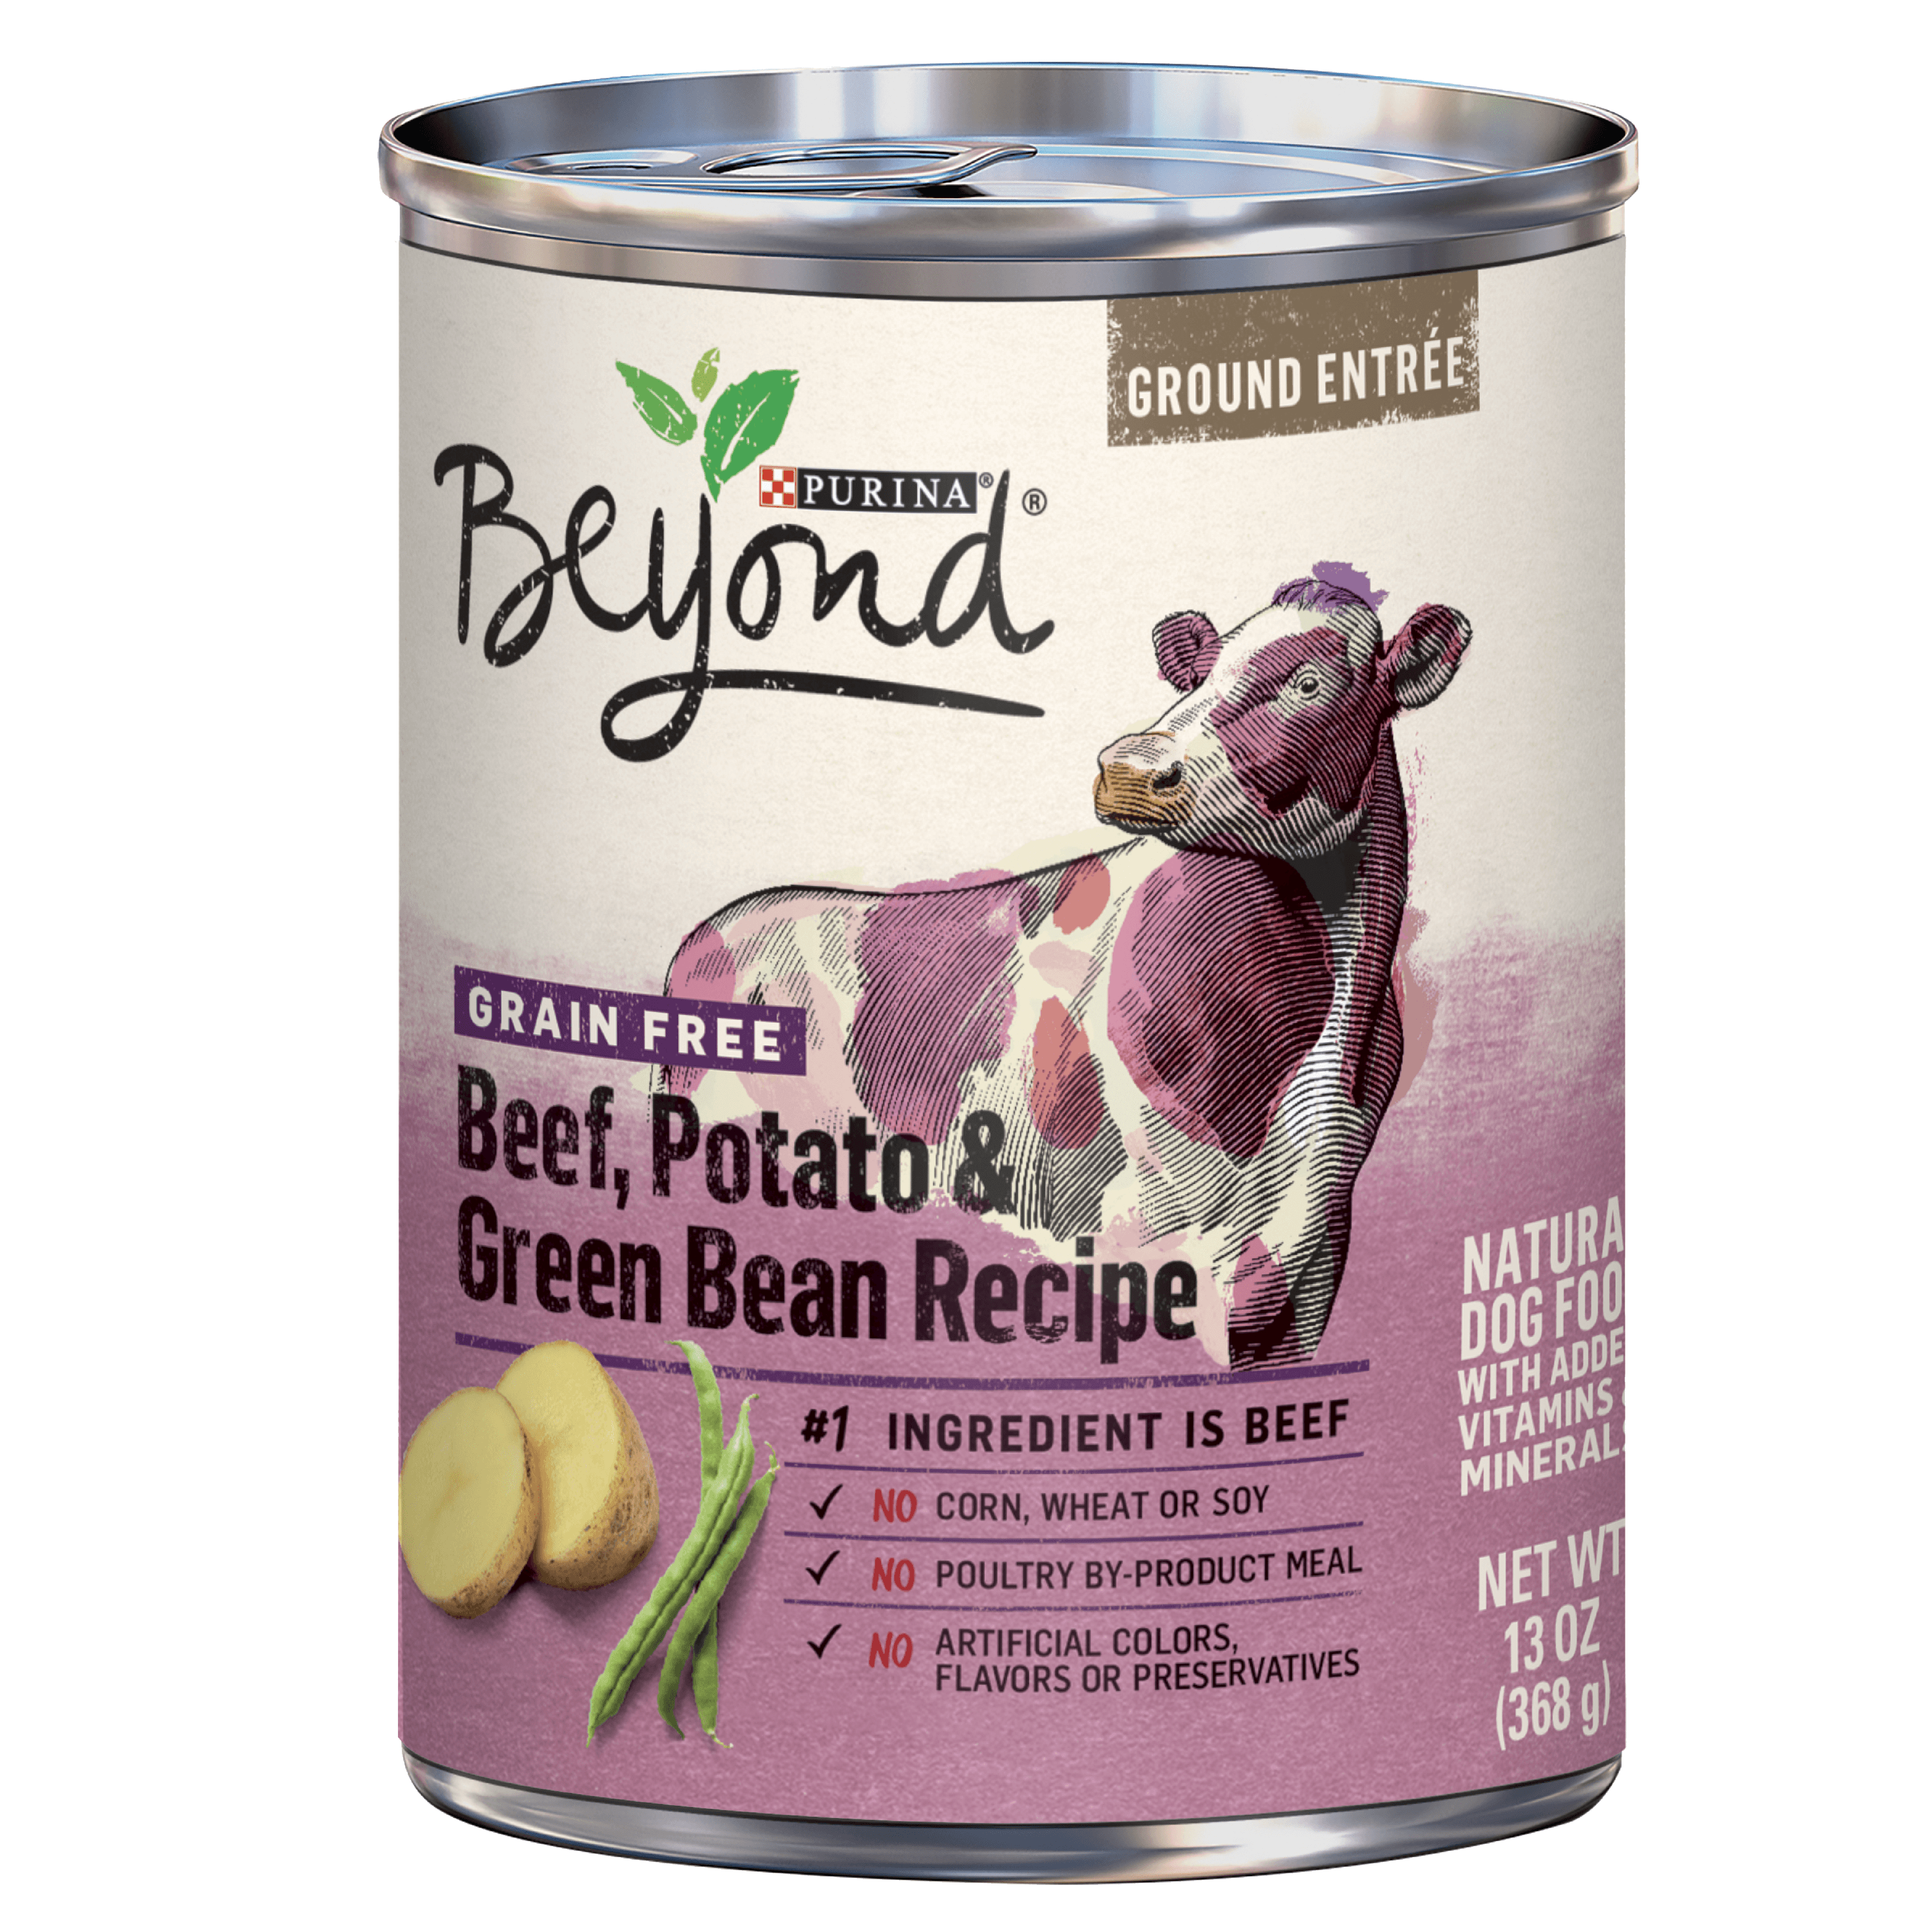 Purina Beyond Grain Free Beef, Potato & Green Bean Recipe Ground Entree Adult Wet Dog Food - 13 oz. Can